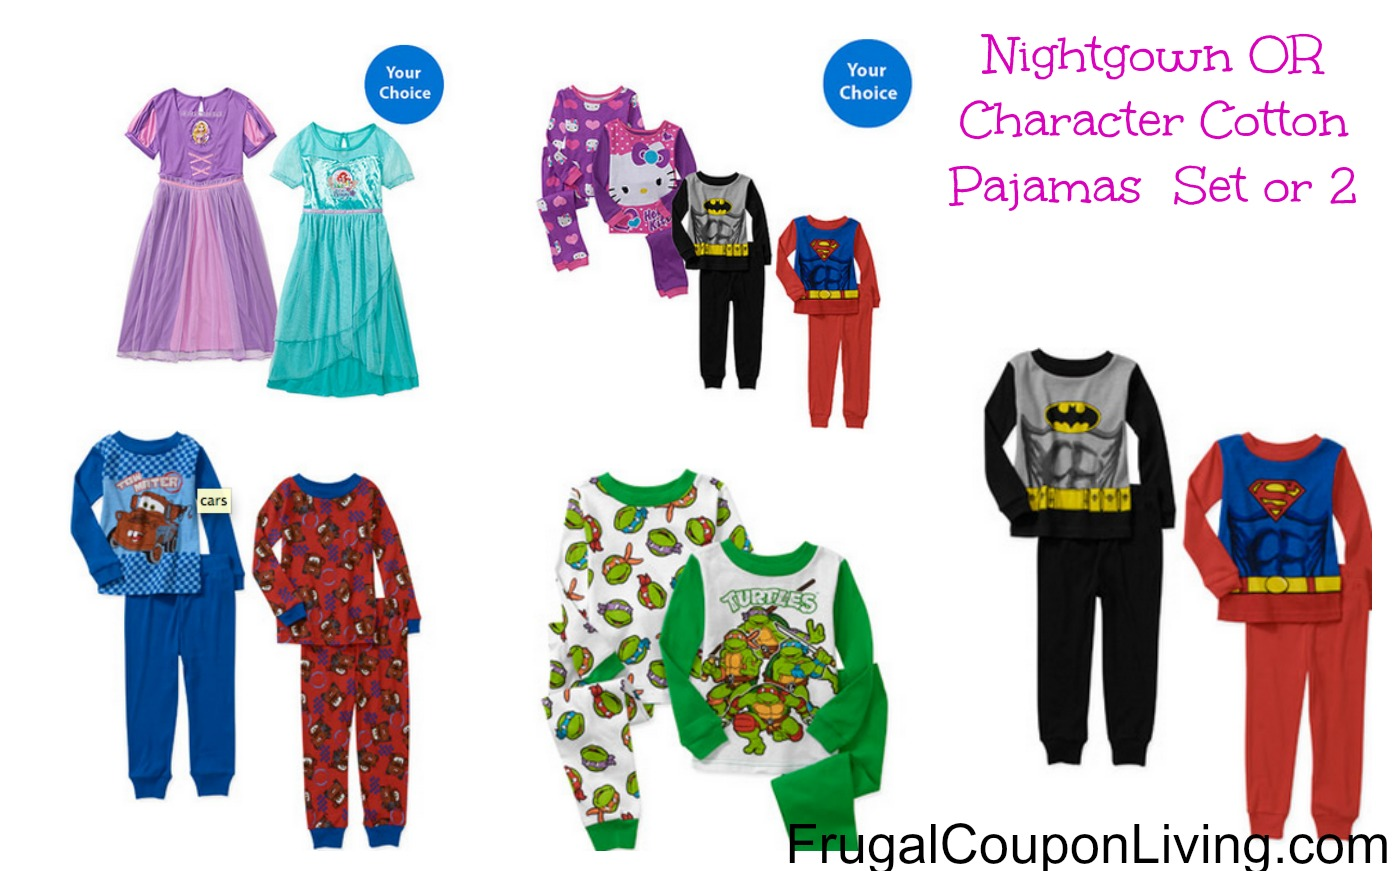 Walmart Character Cotton Pajamas, 2 Sets Or Dress Up Nightgowns ...